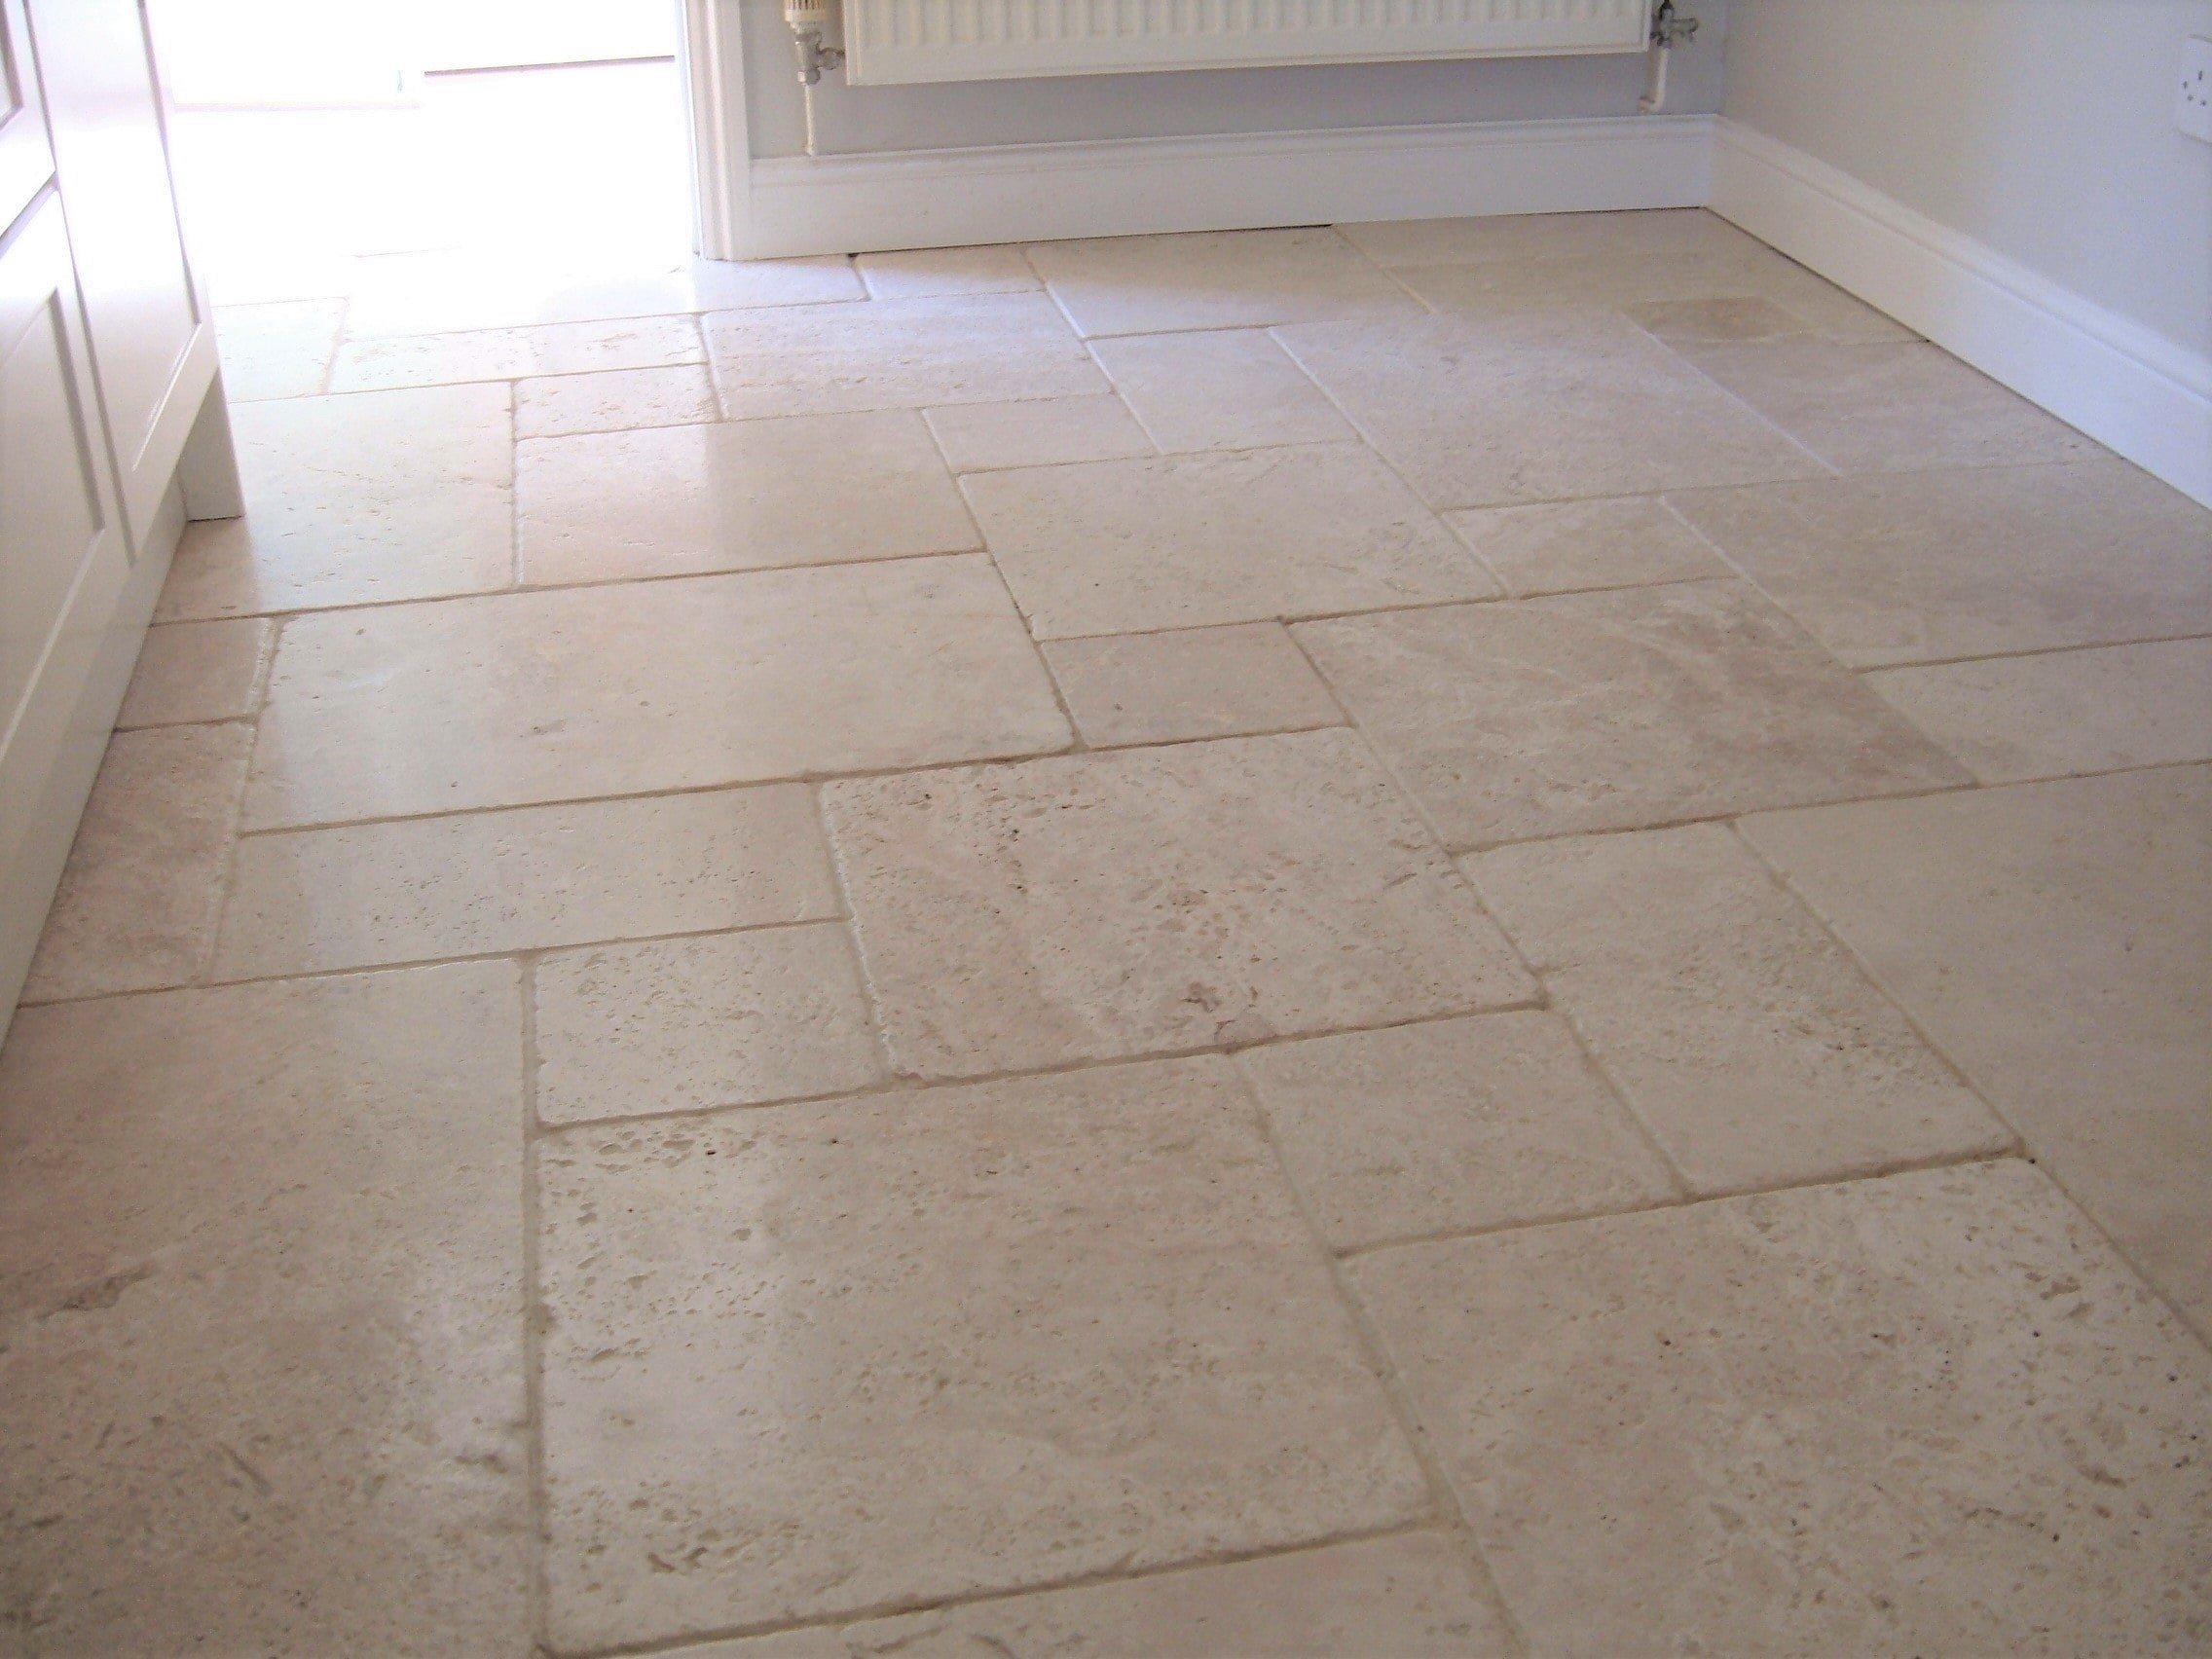 Travertine Floor in Attleborough Cleaned and Sealed